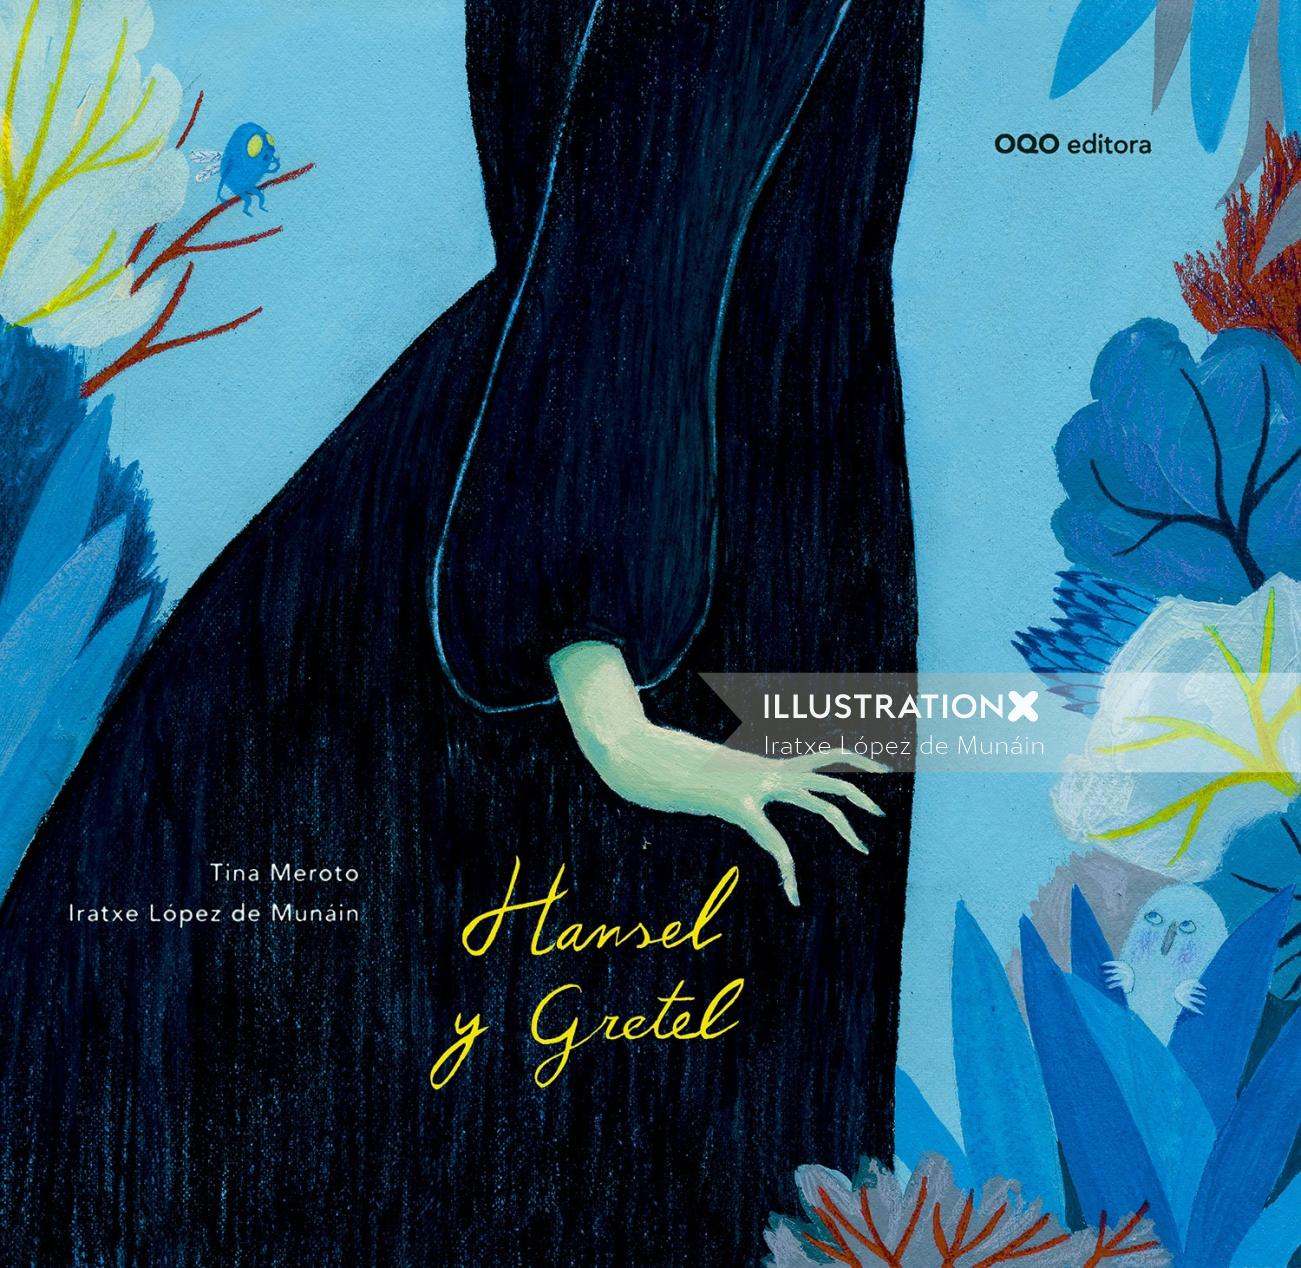 Cover design for Hansel and Gretel movie